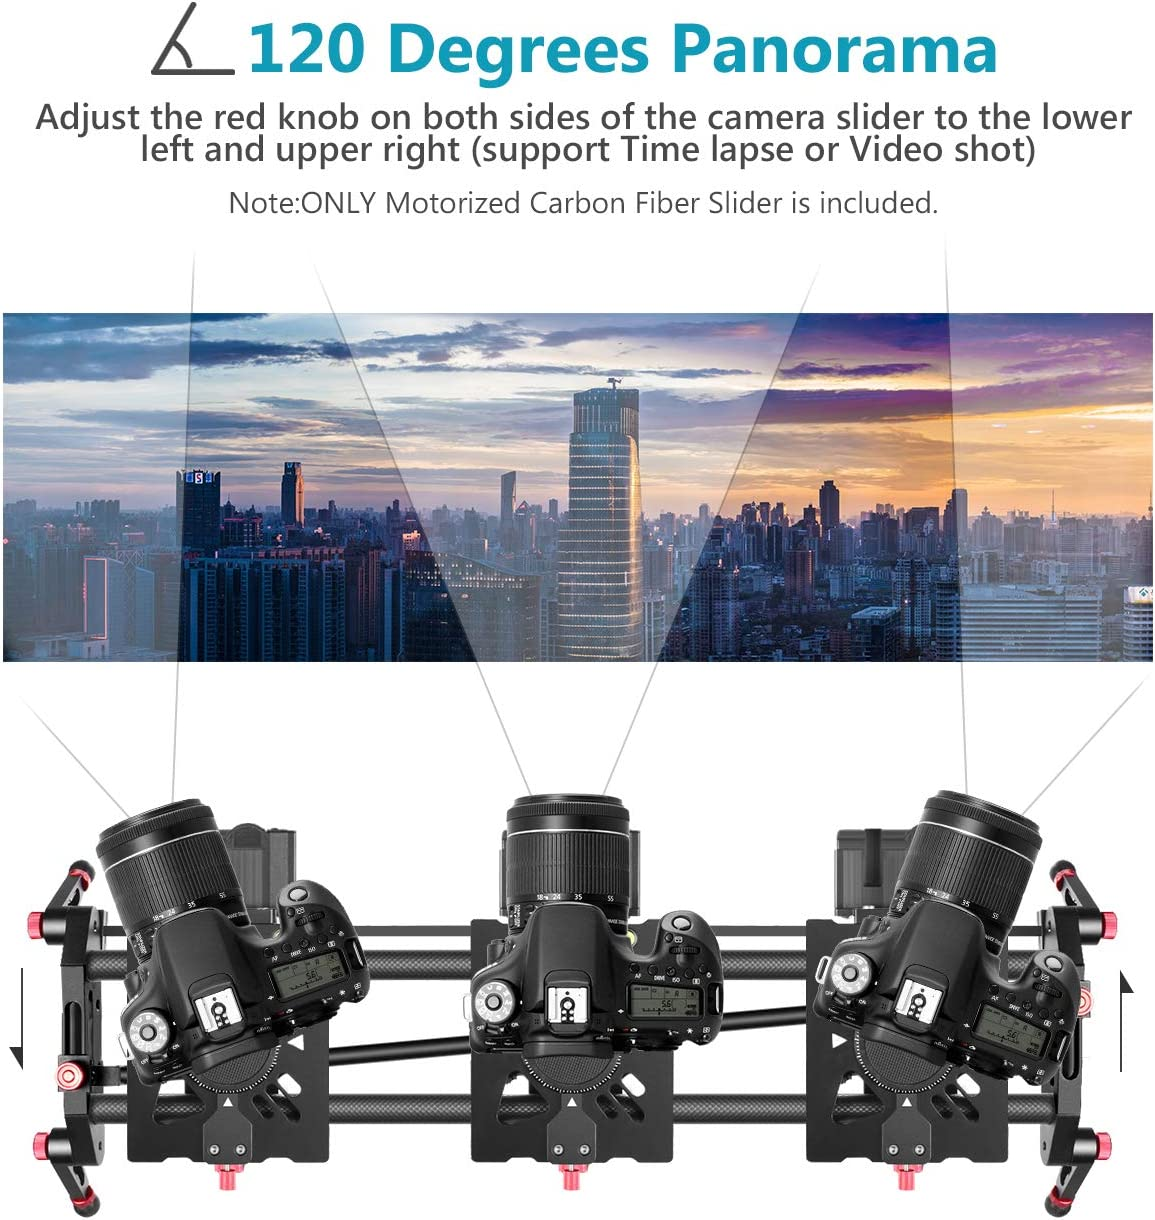 Neewer Motorized Camera Slider, 39.3-inch APP Control Carbon Fiber Track Dolly Rail with Mute Motor/Time Lapse Video Shot/Follow Focus Shot/120 Degree Panoramic Shot for DSLRs, Load up to 22 lbs